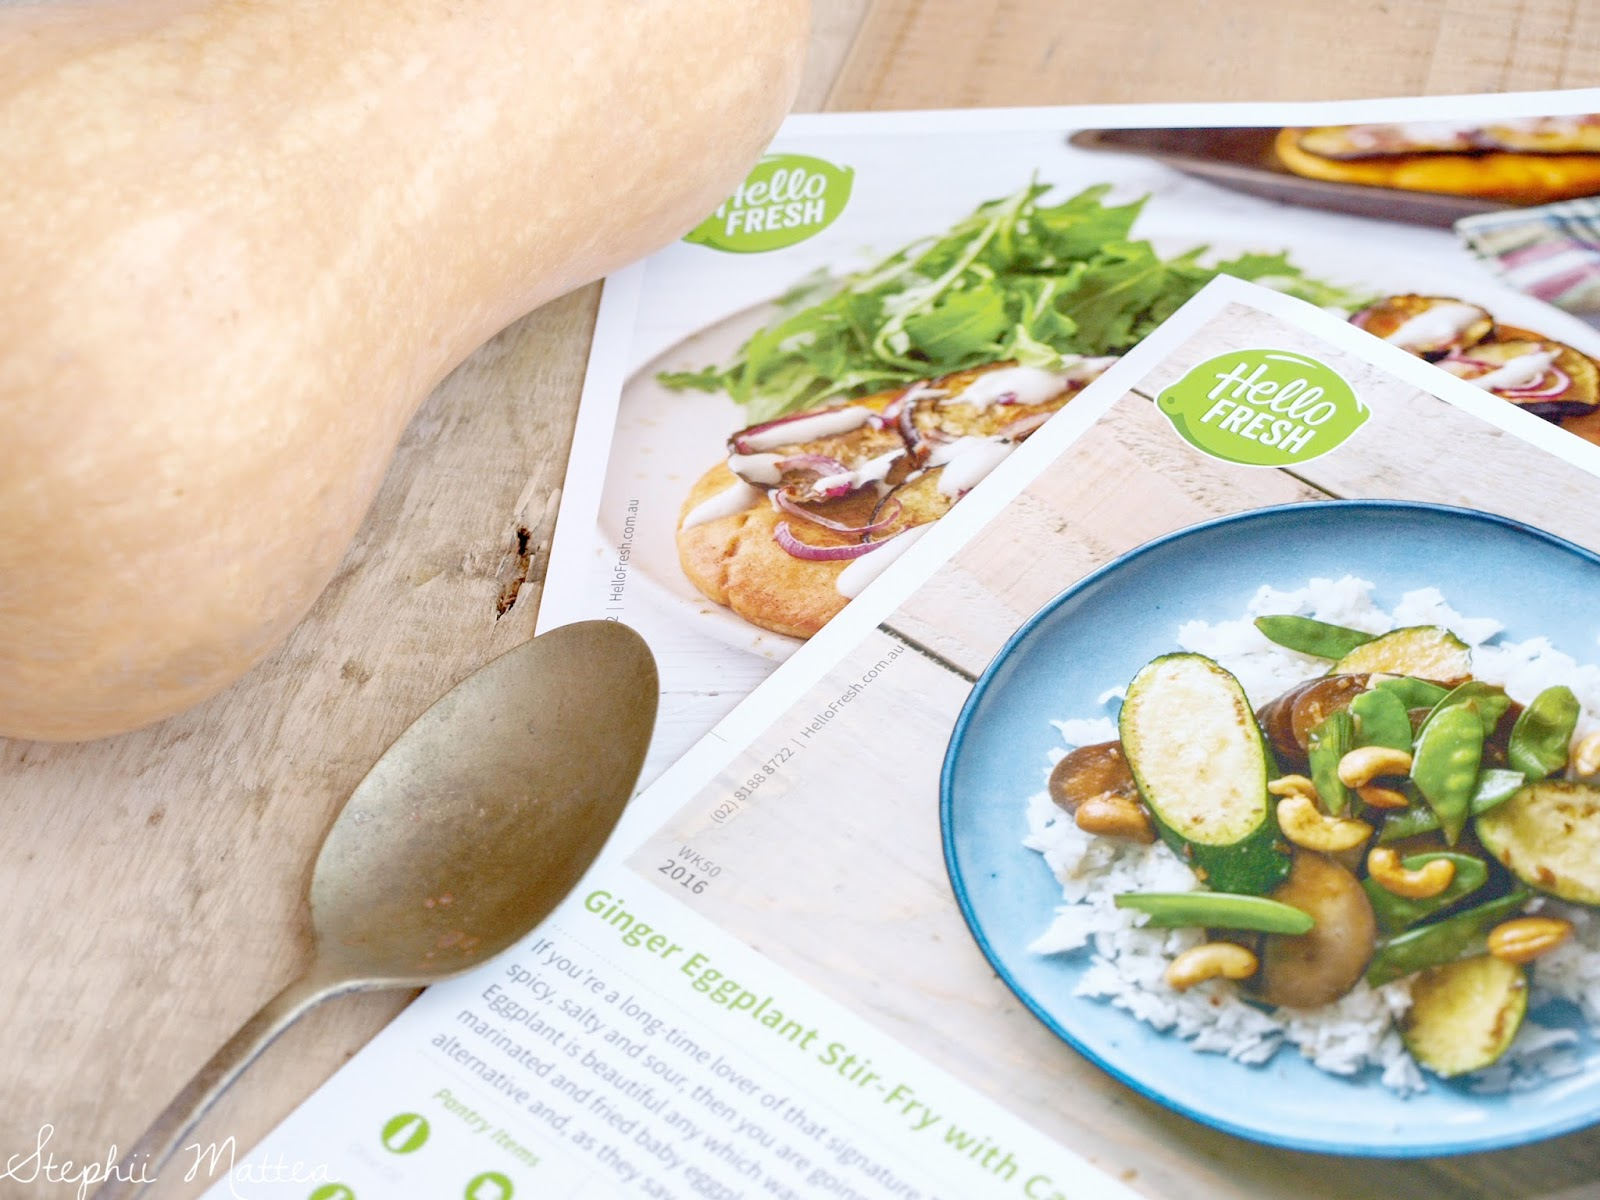 Meal Kit Delivery Service  Hellofresh Dimensions In Cm